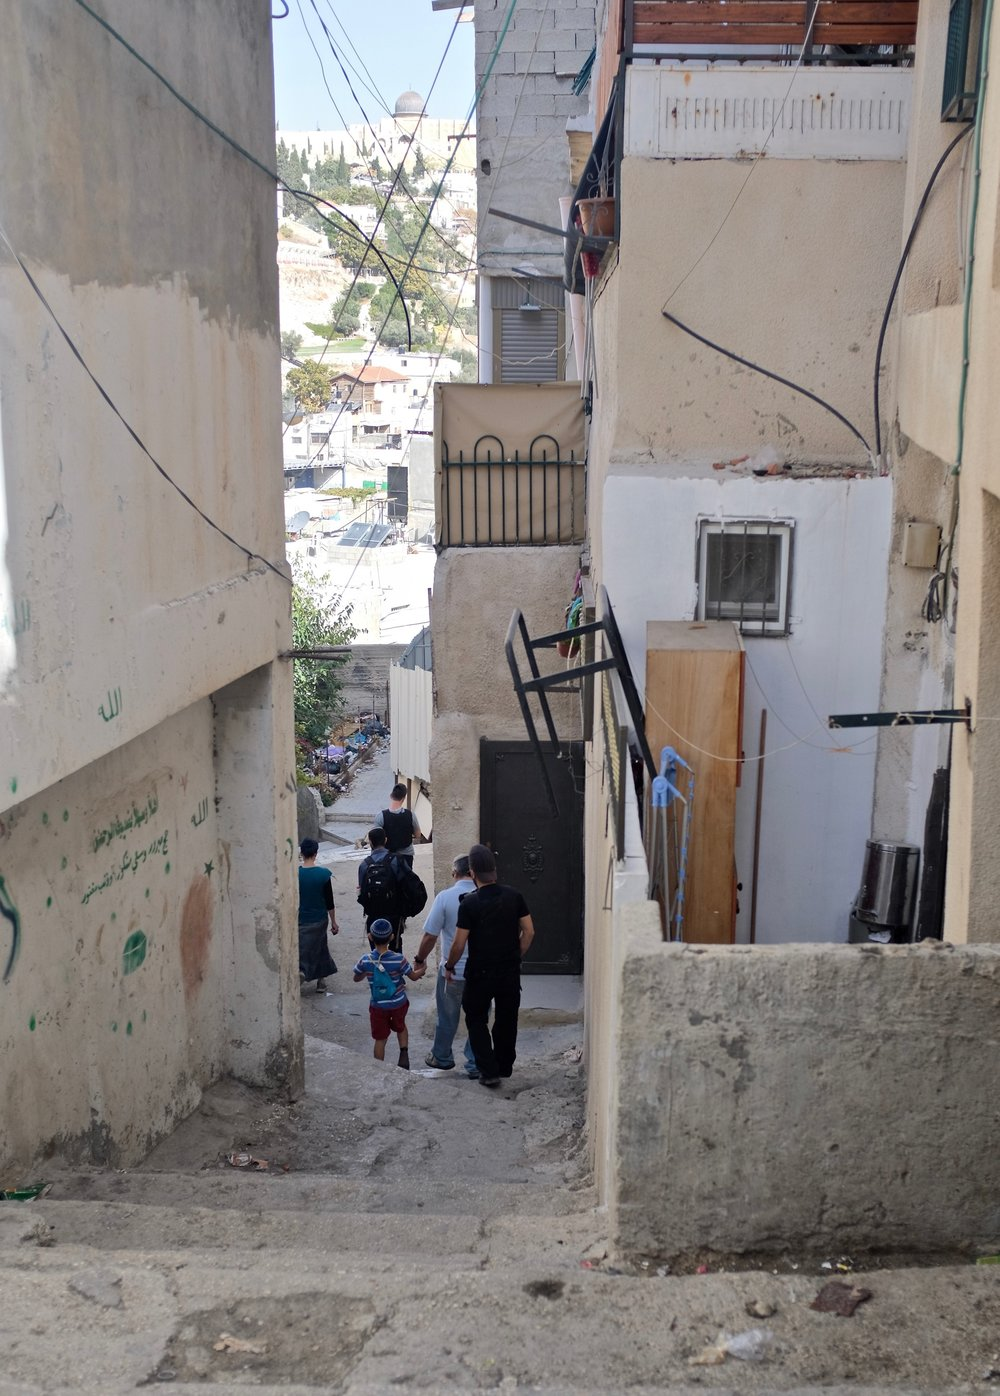 Settlers and their private security in the heart of community